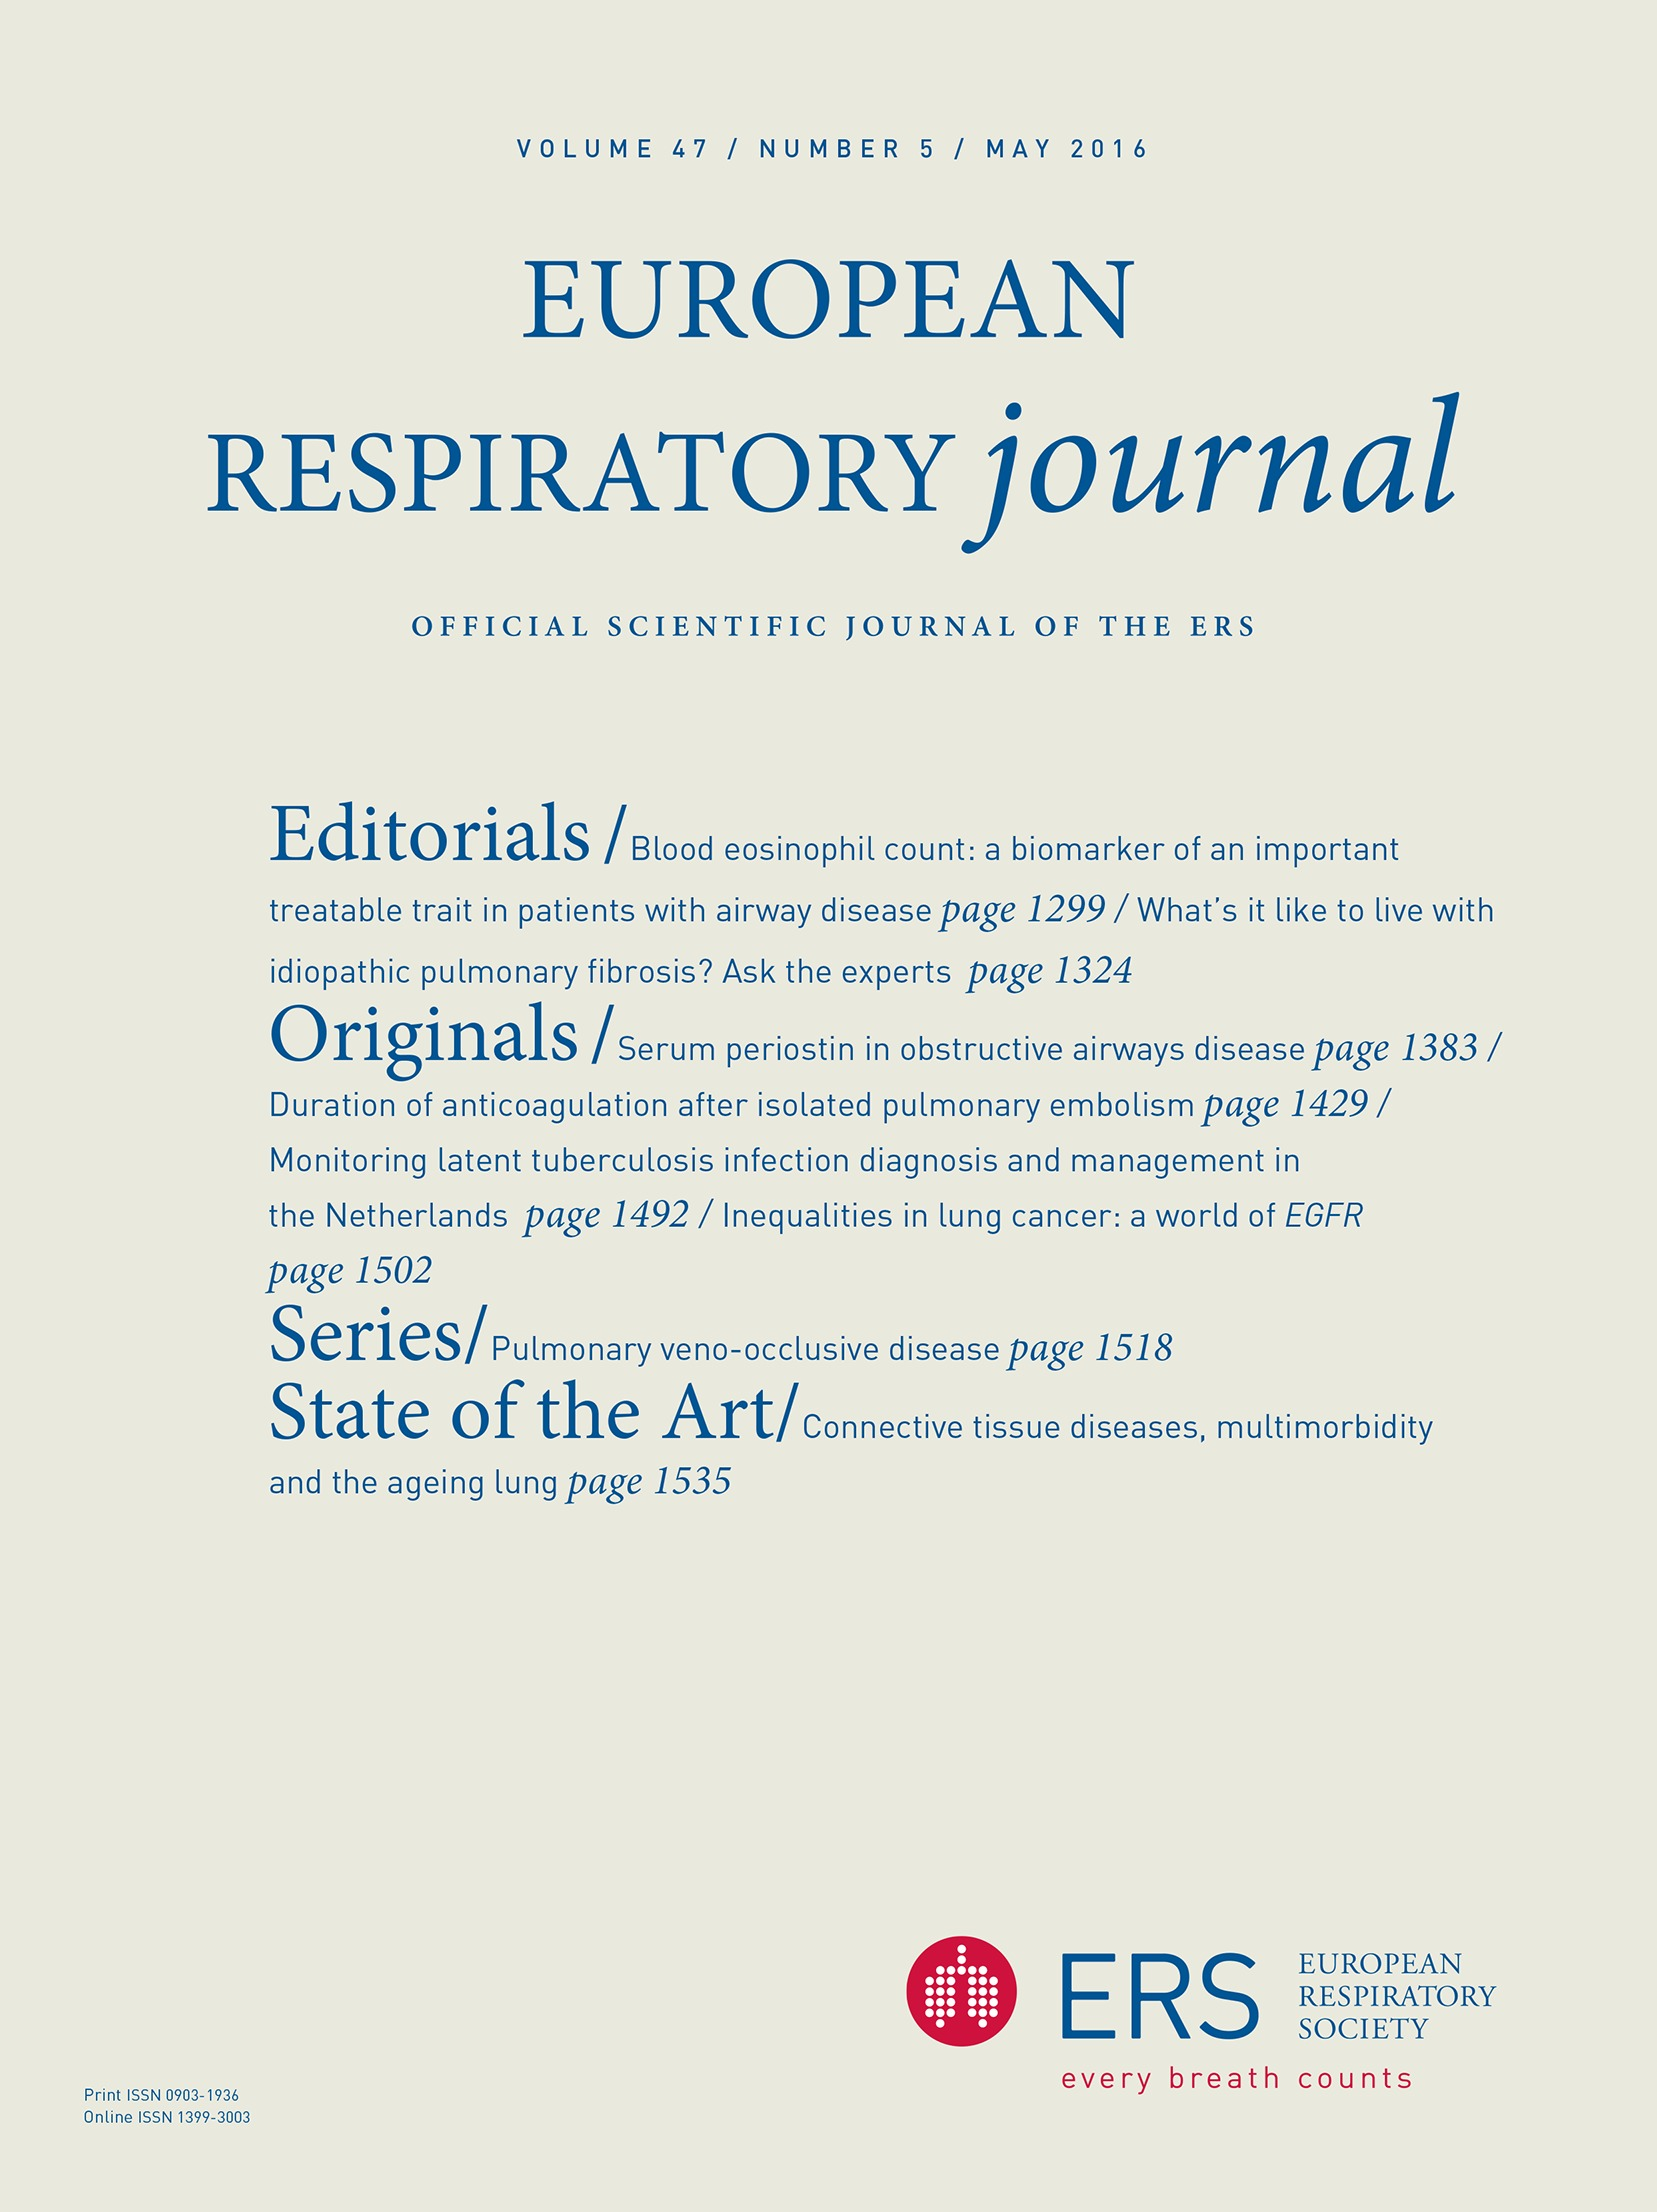 Inequalities in lung cancer: a world of EGFR | European Respiratory Society